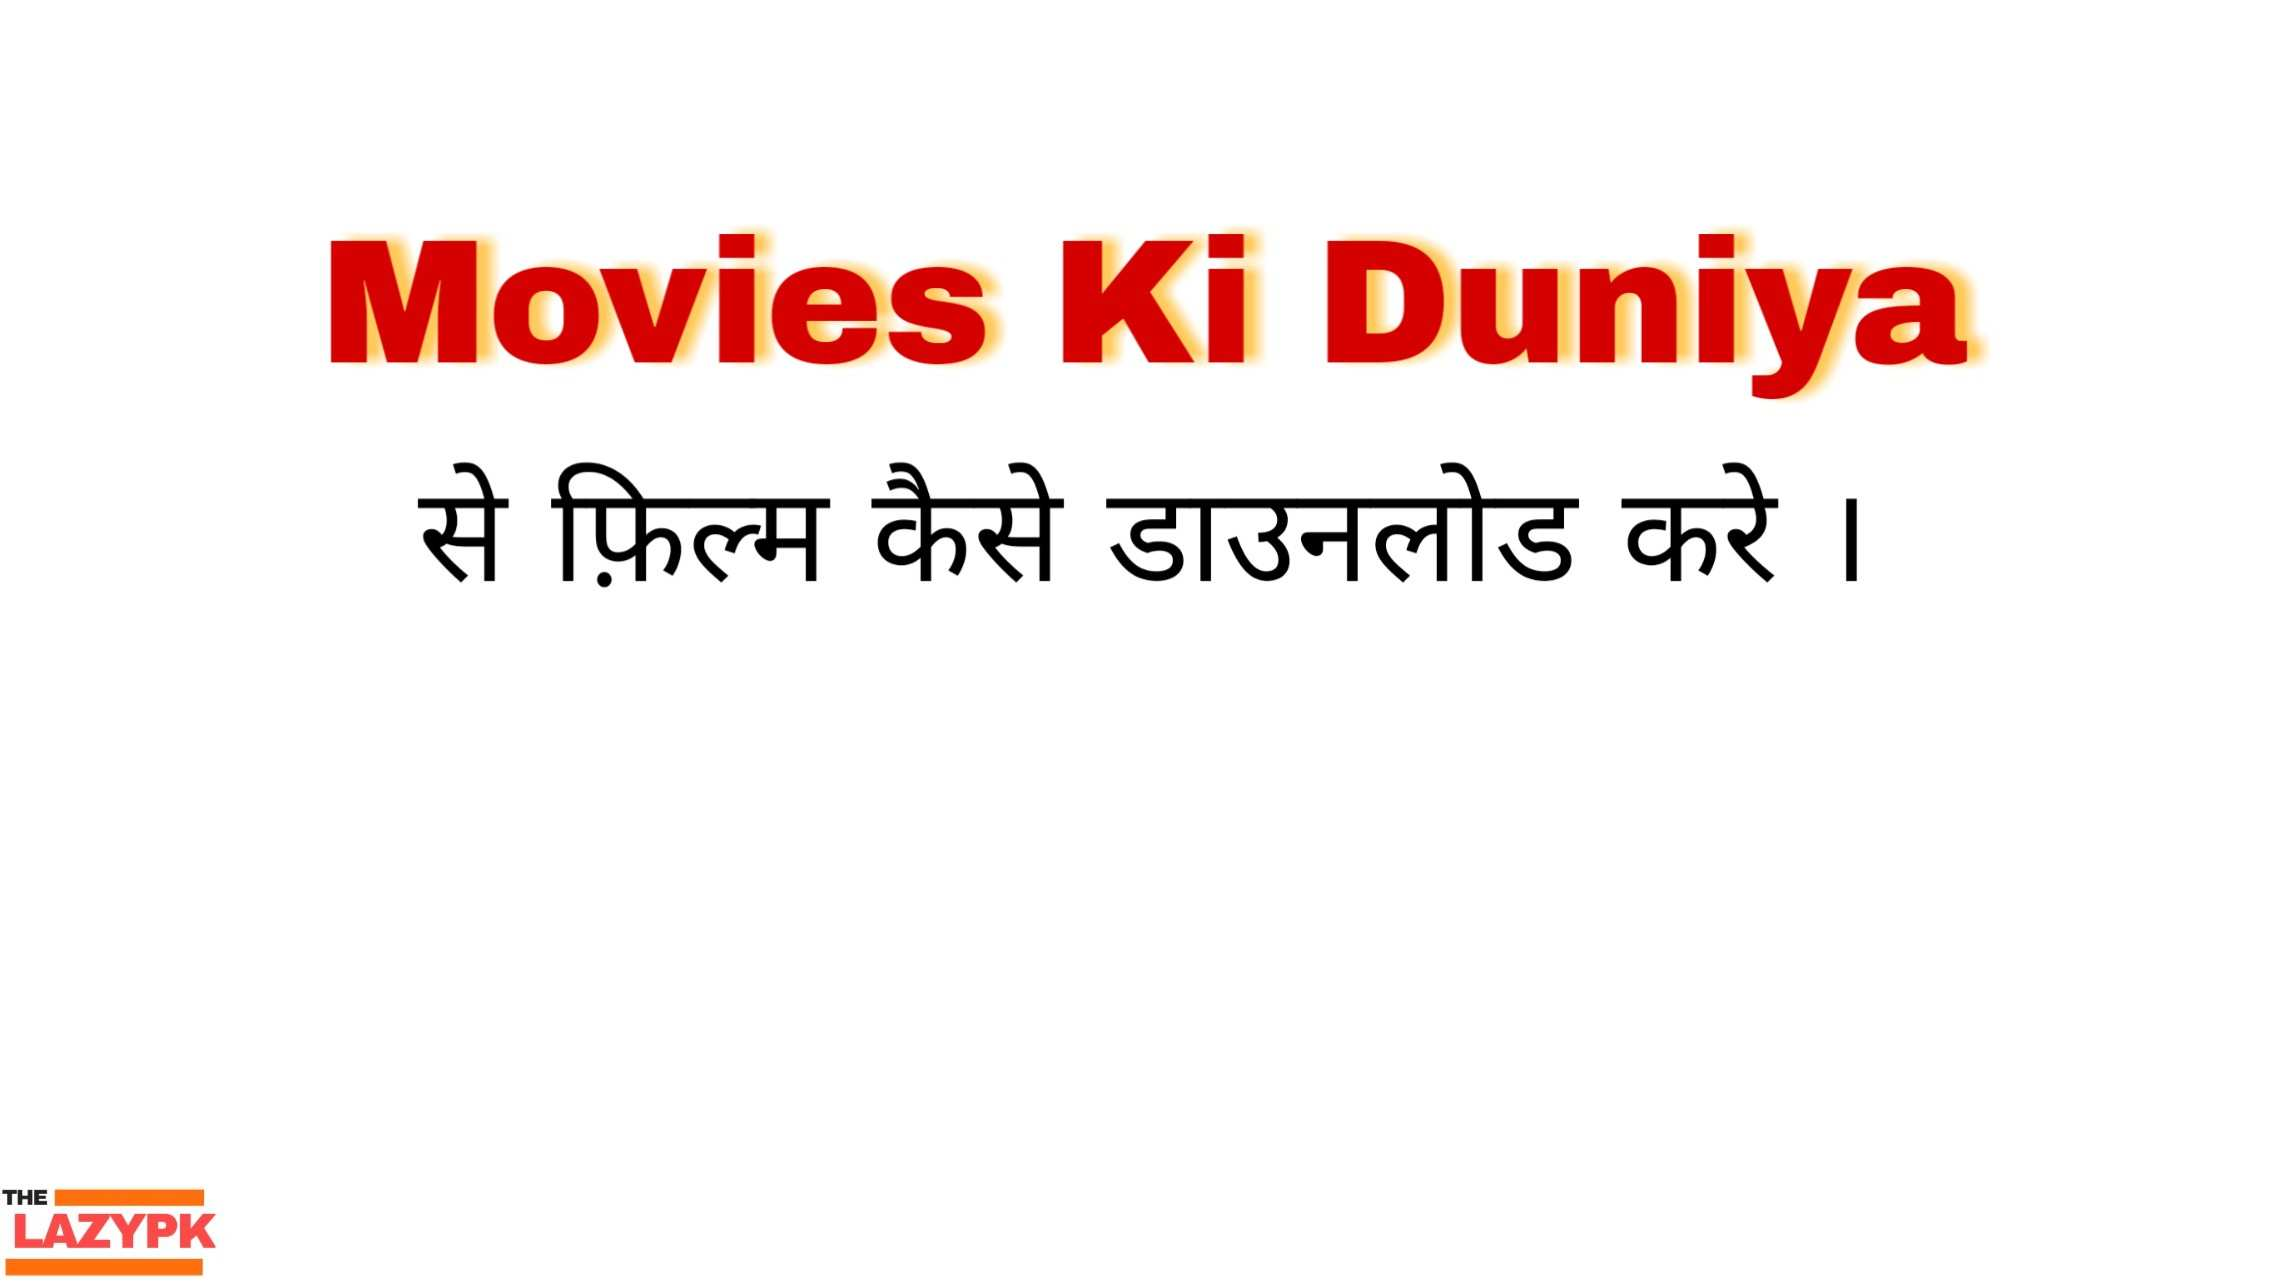 Movies Ki Duniya - In which you can download and watch Bollywood Movie Download, Hollywood Movie Download, Tollywood Movie Download, Pollywood Movie Download, Pakistani Movies, Nepali Movies and Bhojpuri Movies.